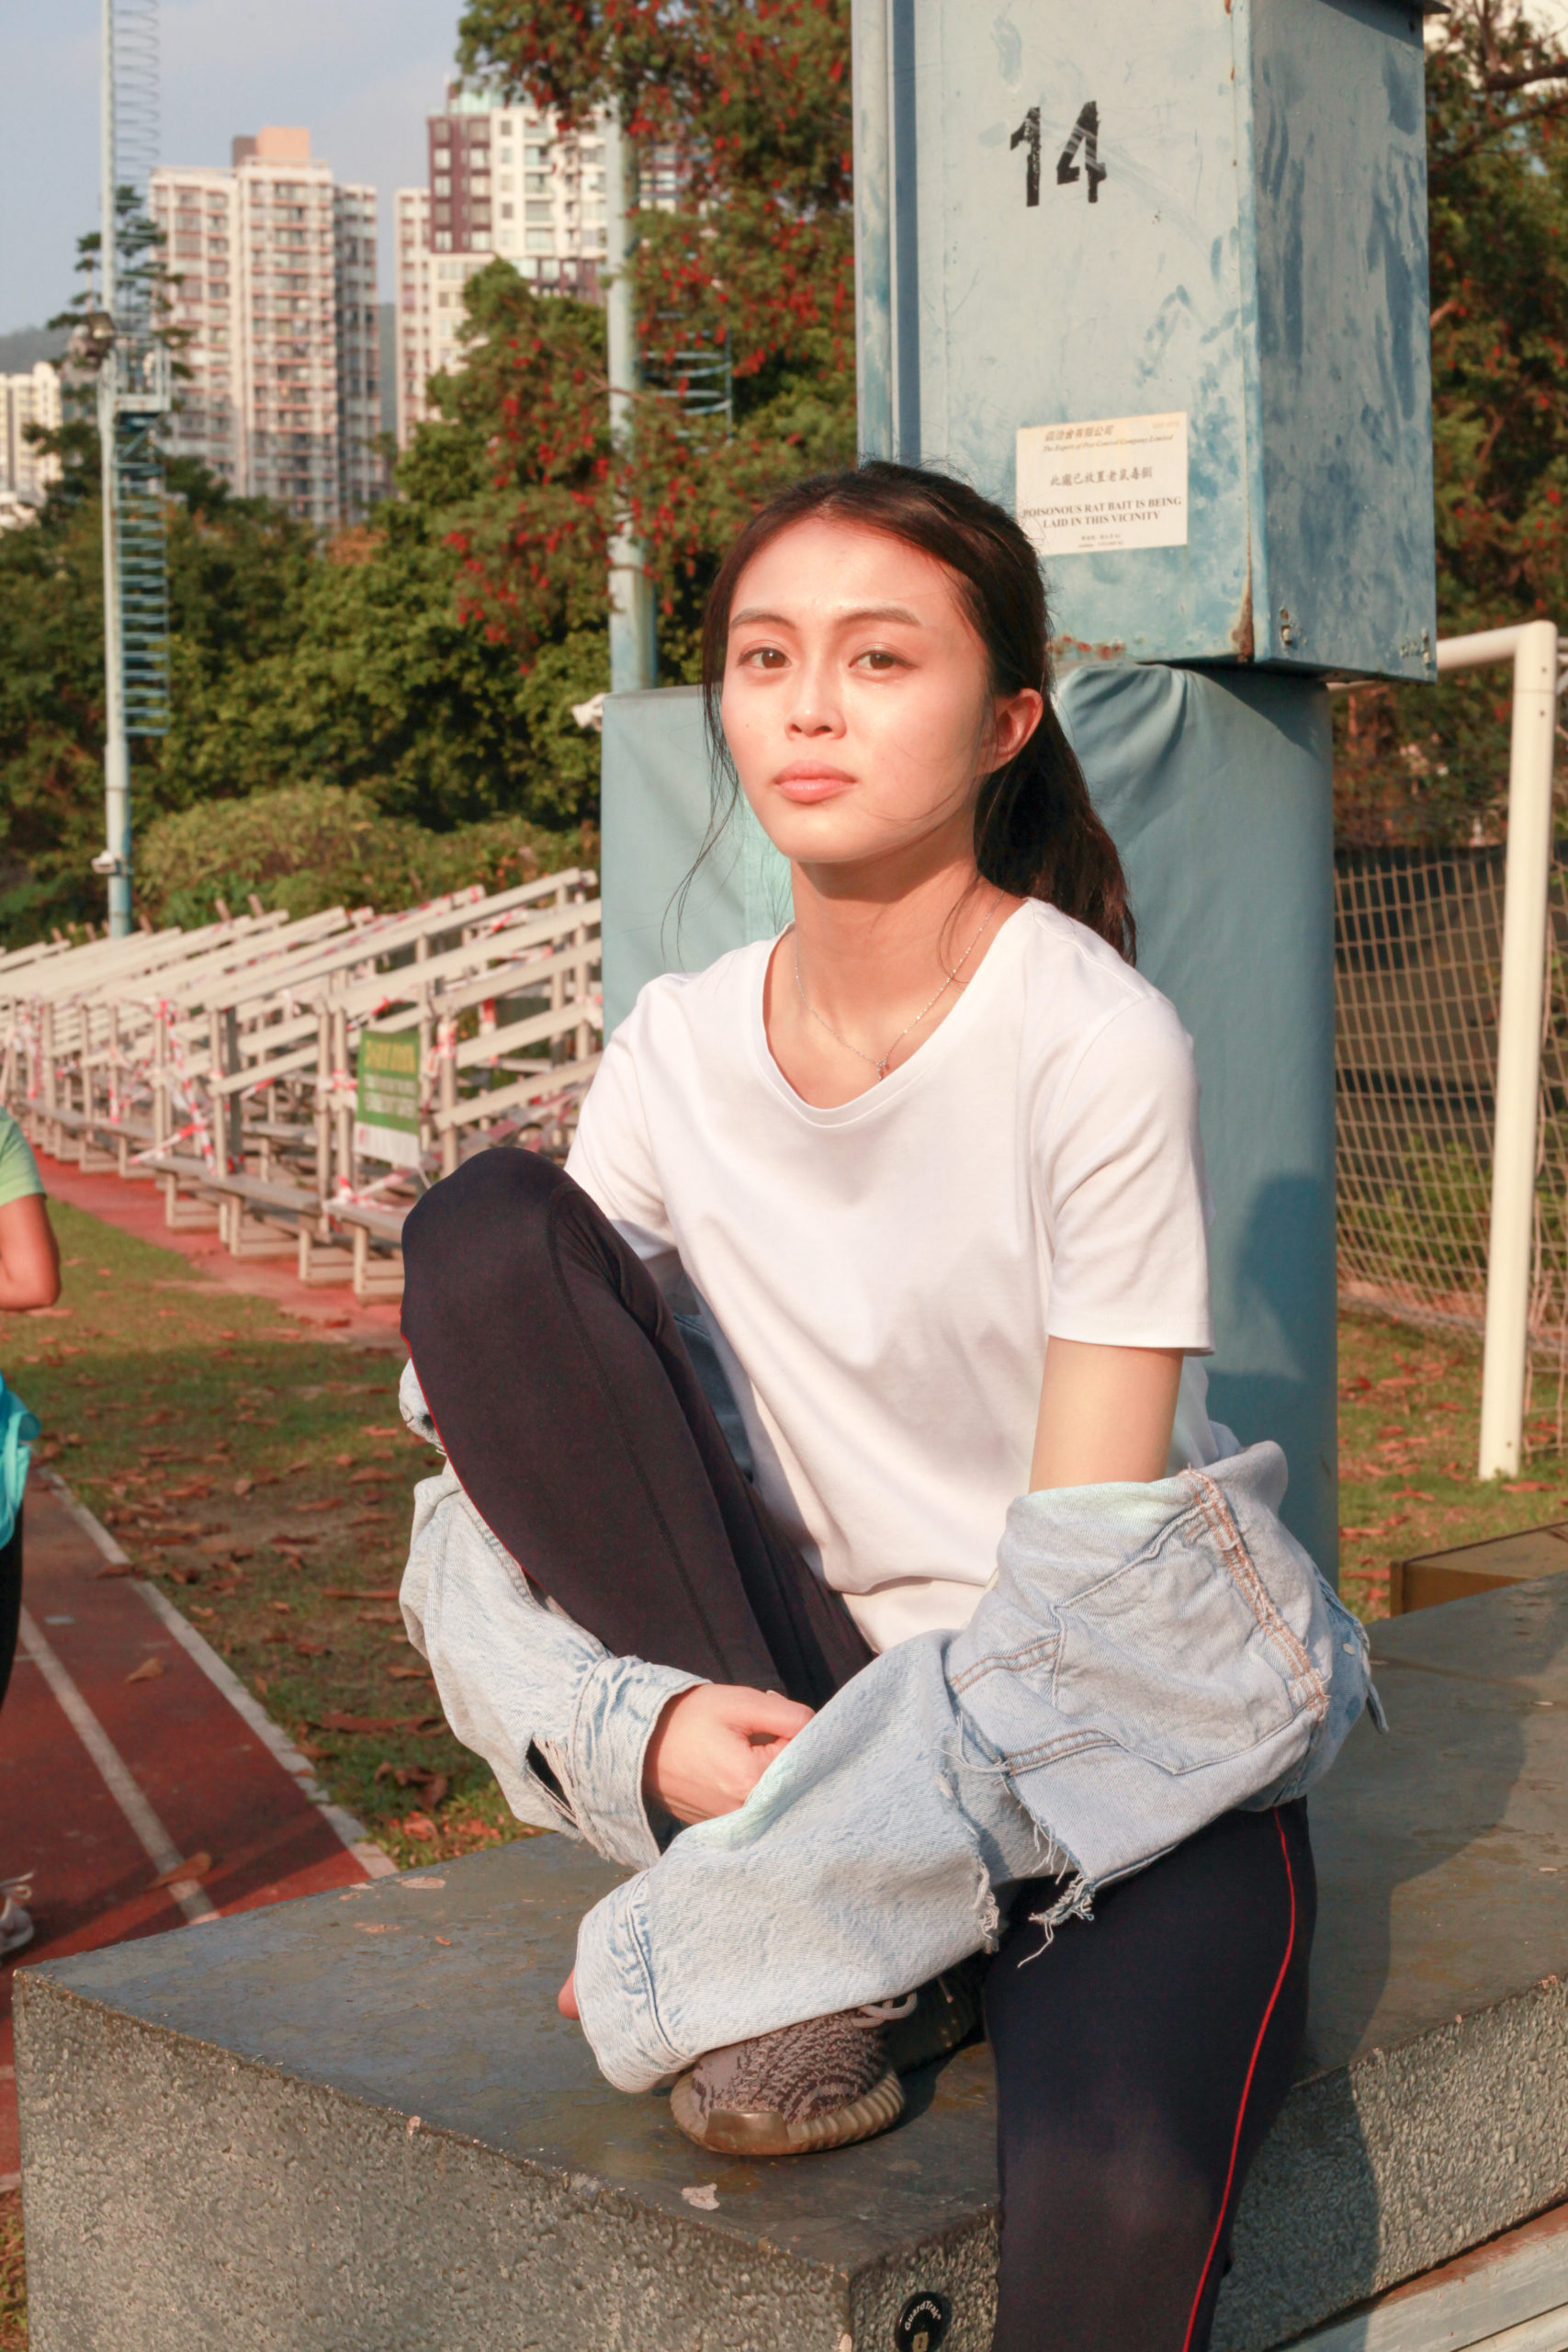 Boxy Sports Leisure Outfit